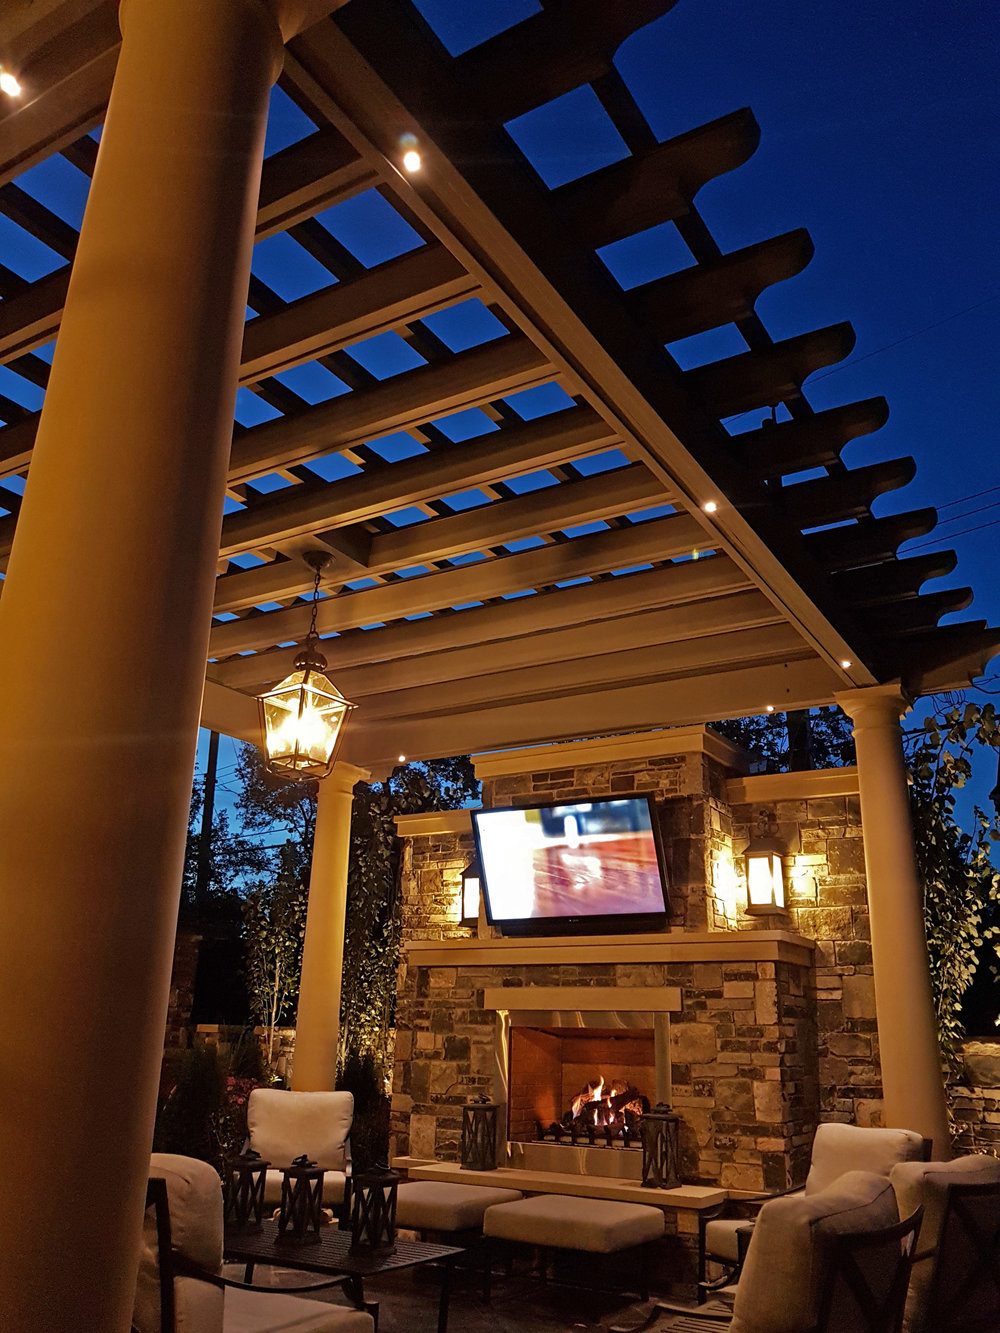 ddla-design-outdoor-pergola-fireplace.jpg